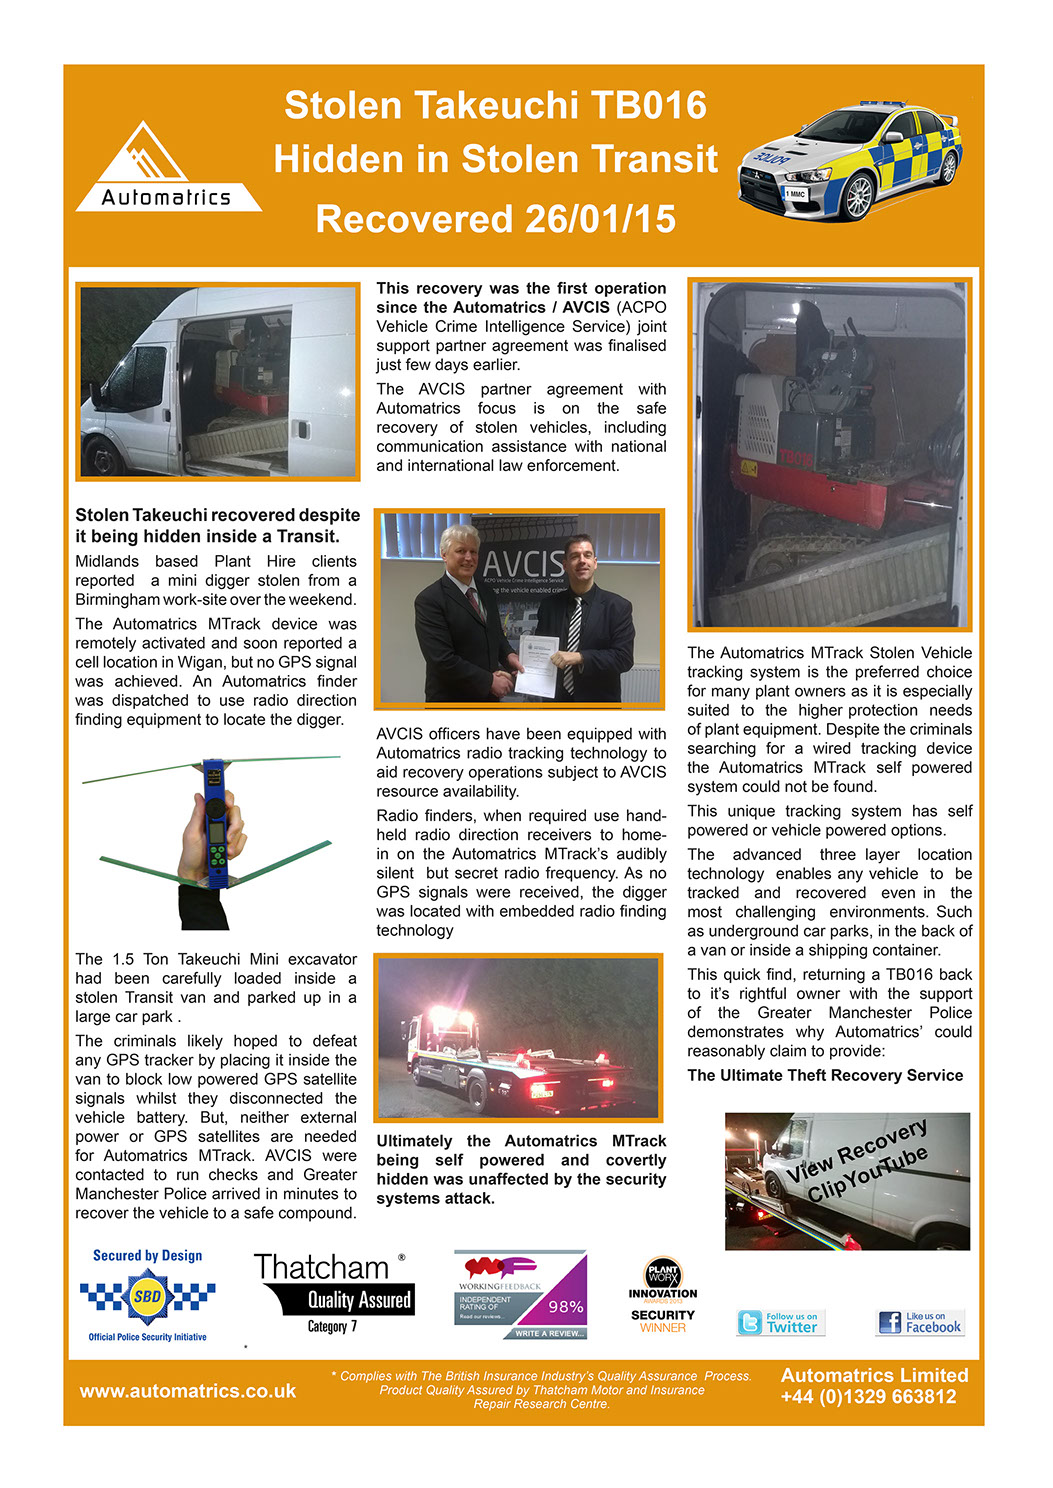 Stolen Takeuchi Mini Digger is Recovered hidden inside a transit van by Automatrics MTrack Newsletter